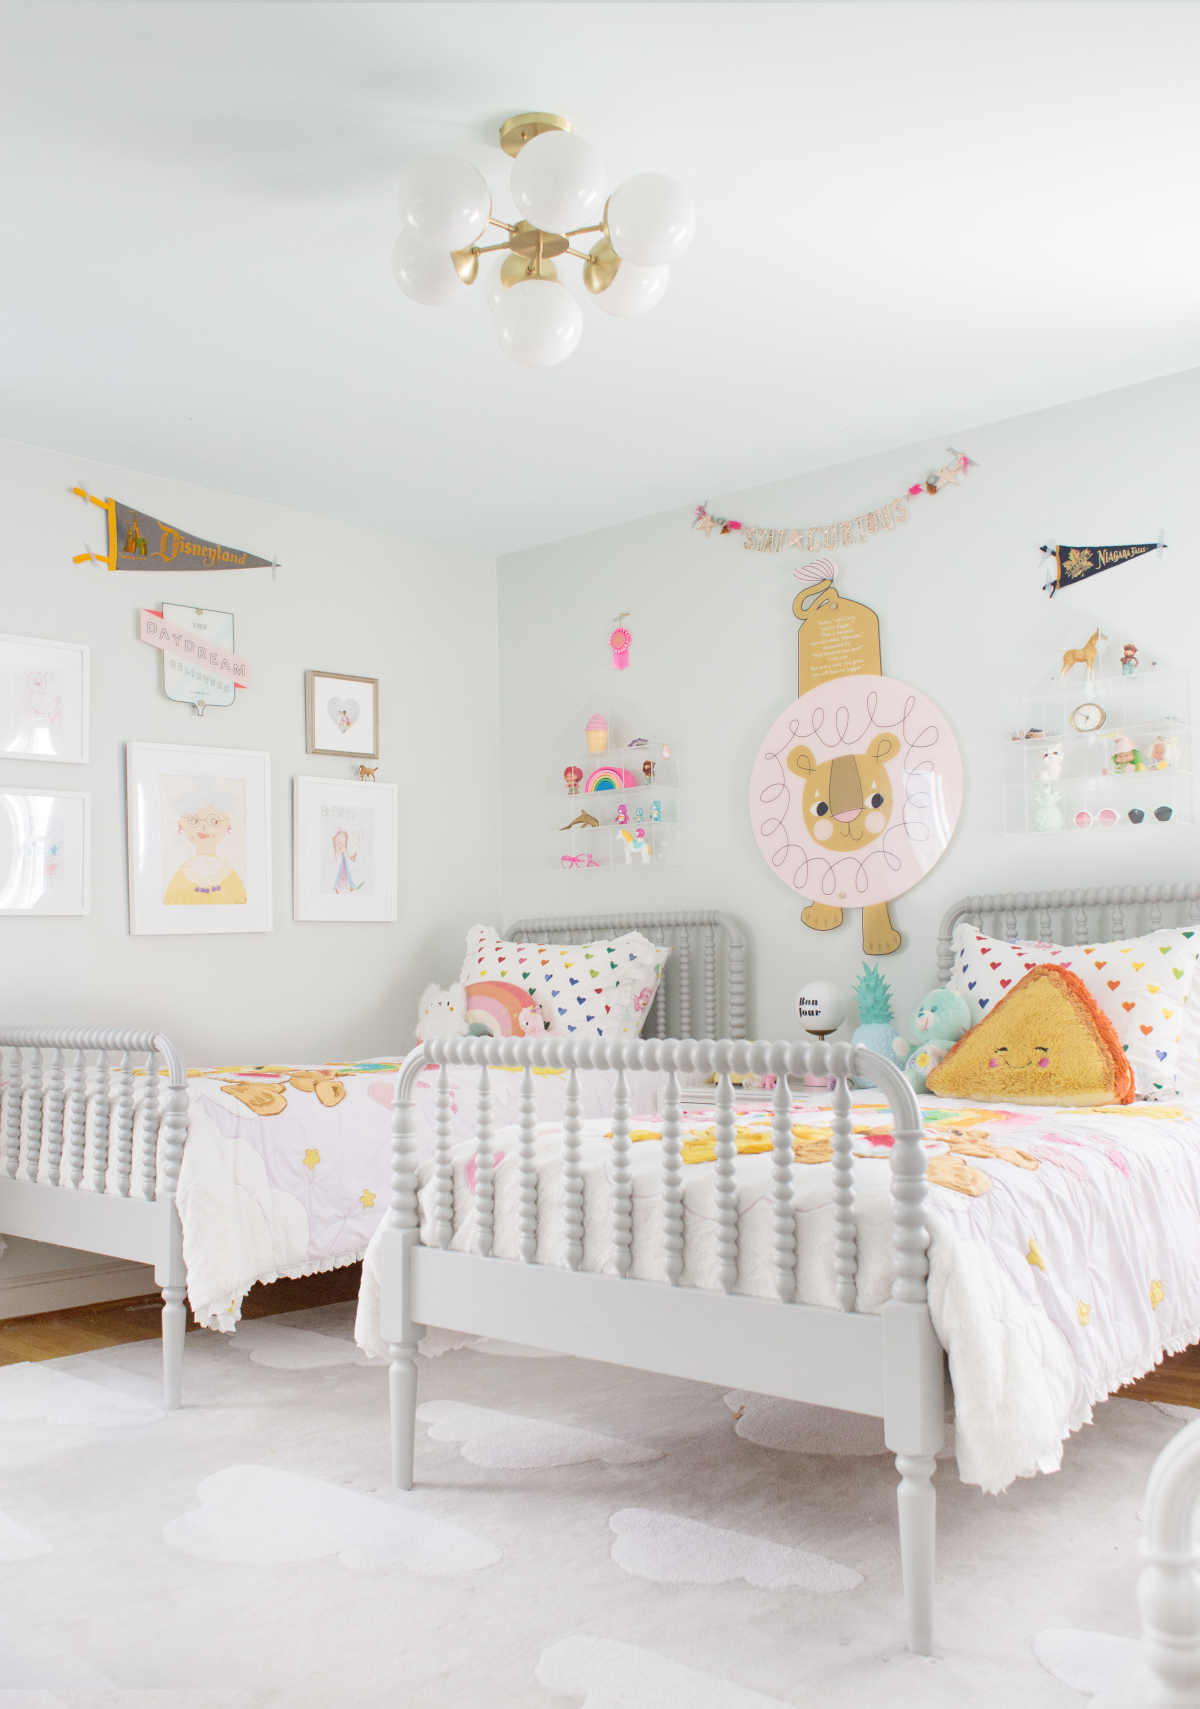 Shared room ideas for three girls lay baby lay shared room ideas fro three girls sisterspd